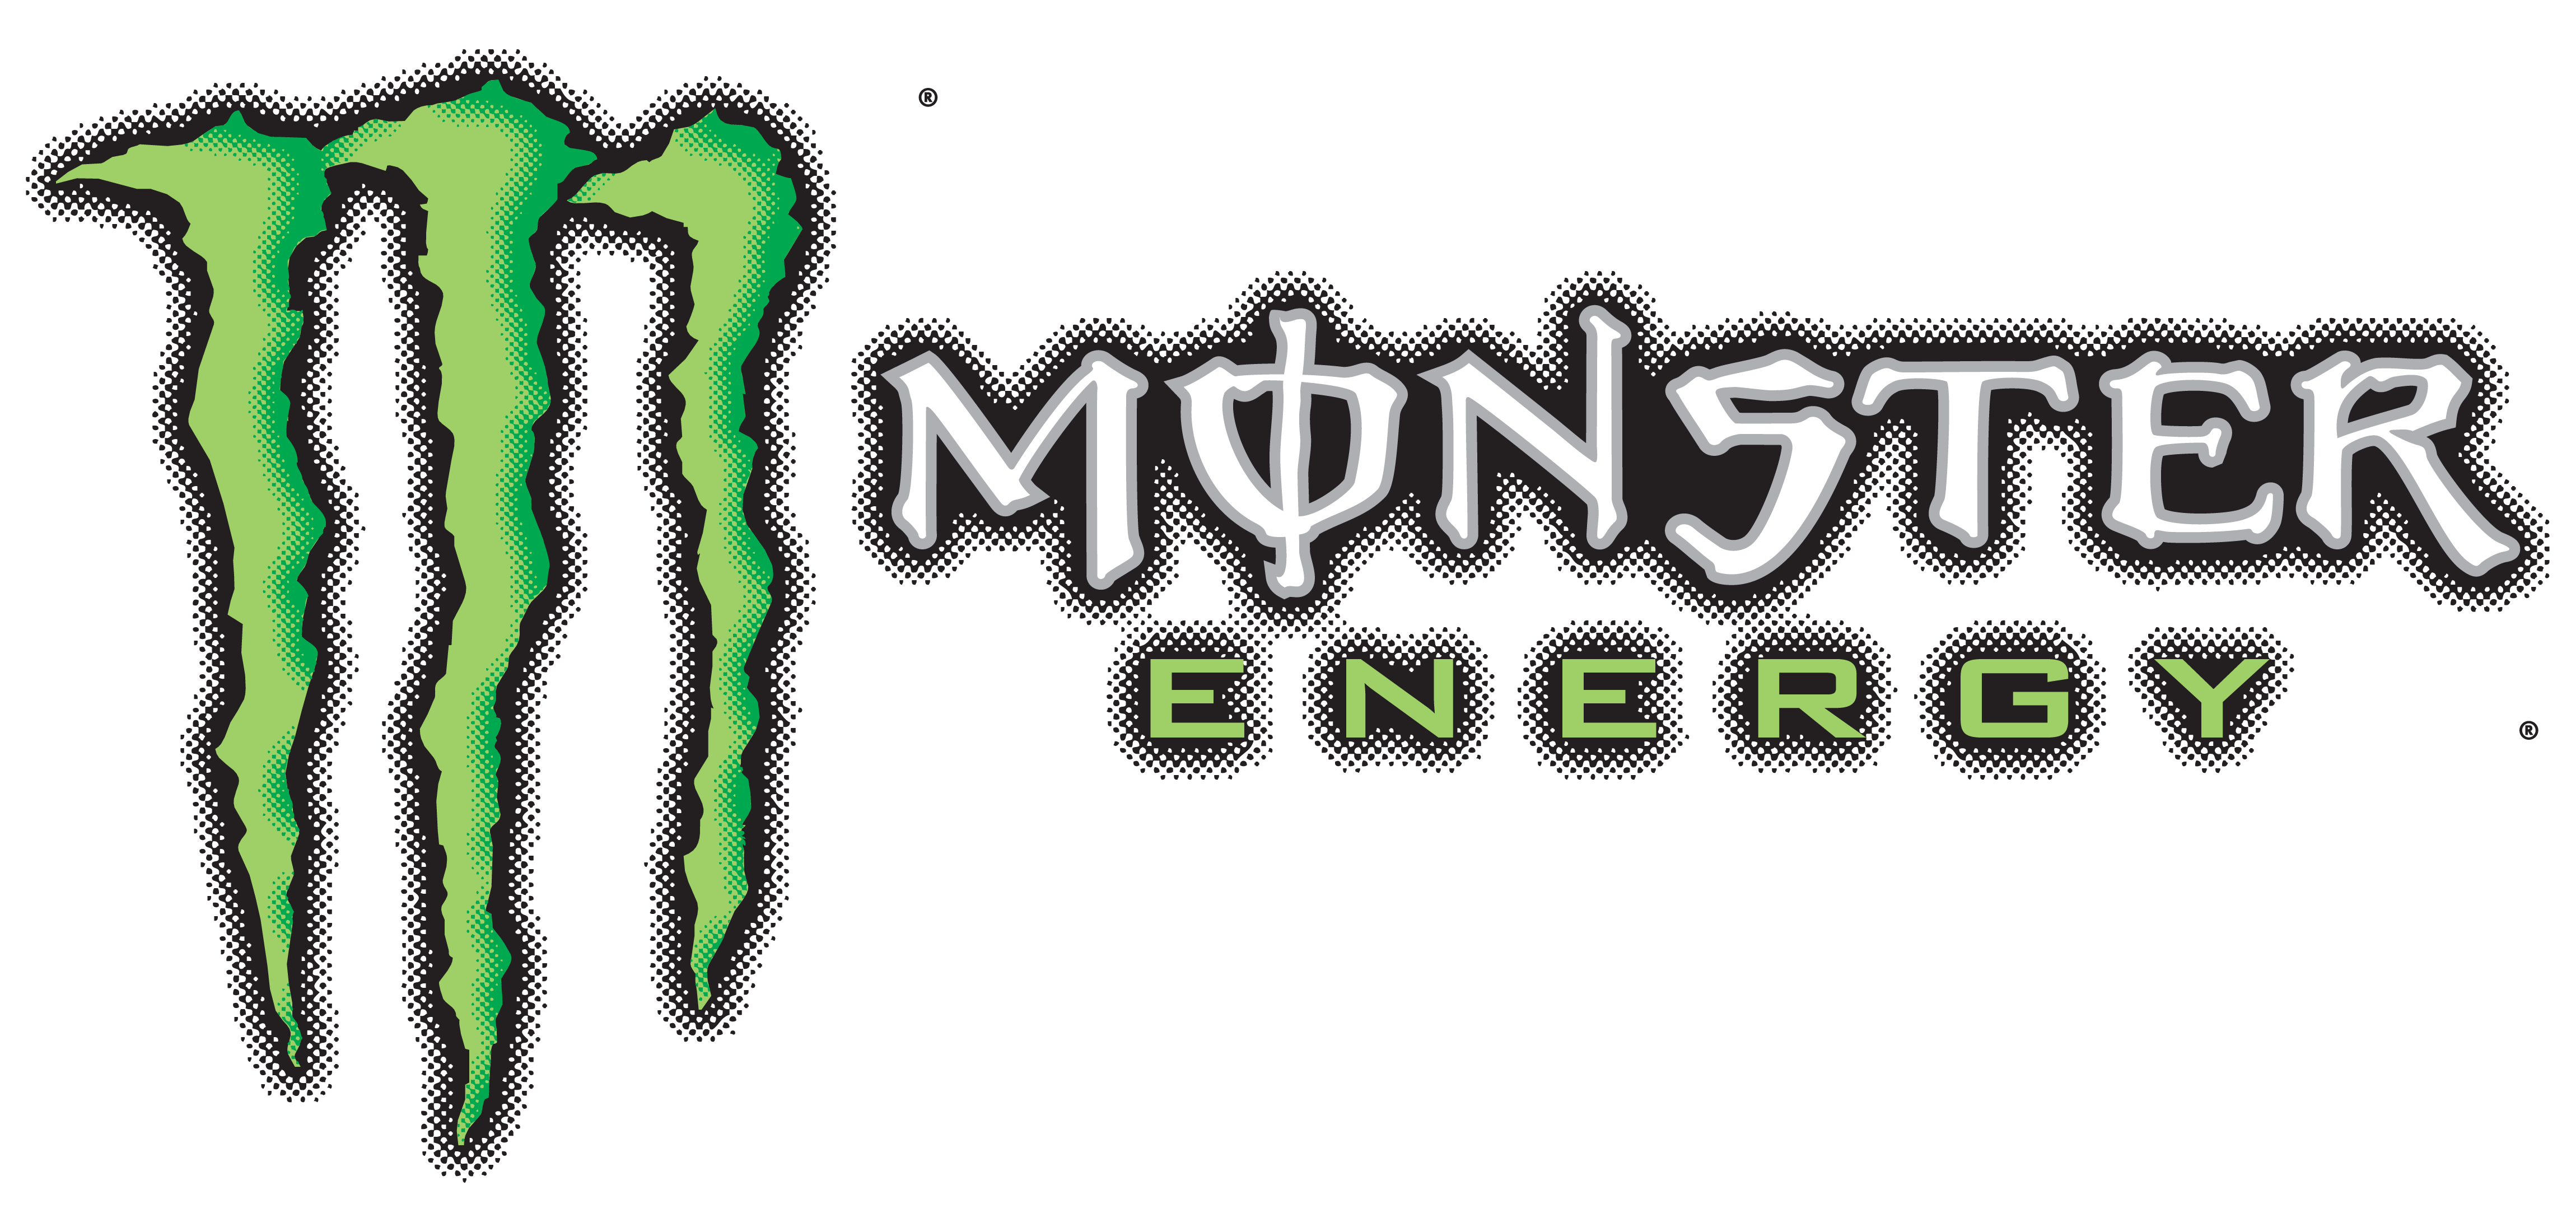 Monster energy logo png. Drink red images wallpaper